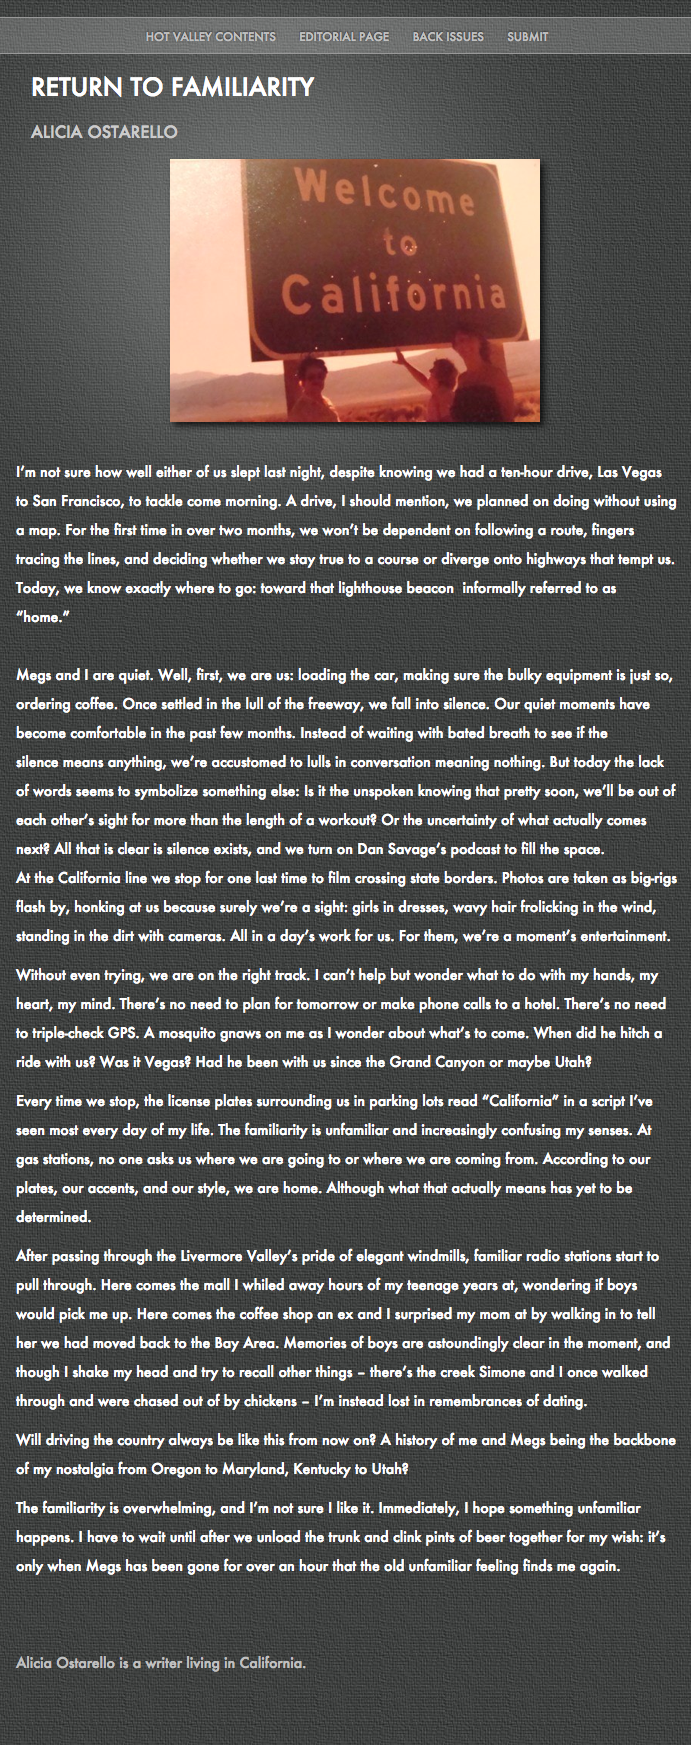 Publication - Hot Valley Press - Return to Familiarity.png